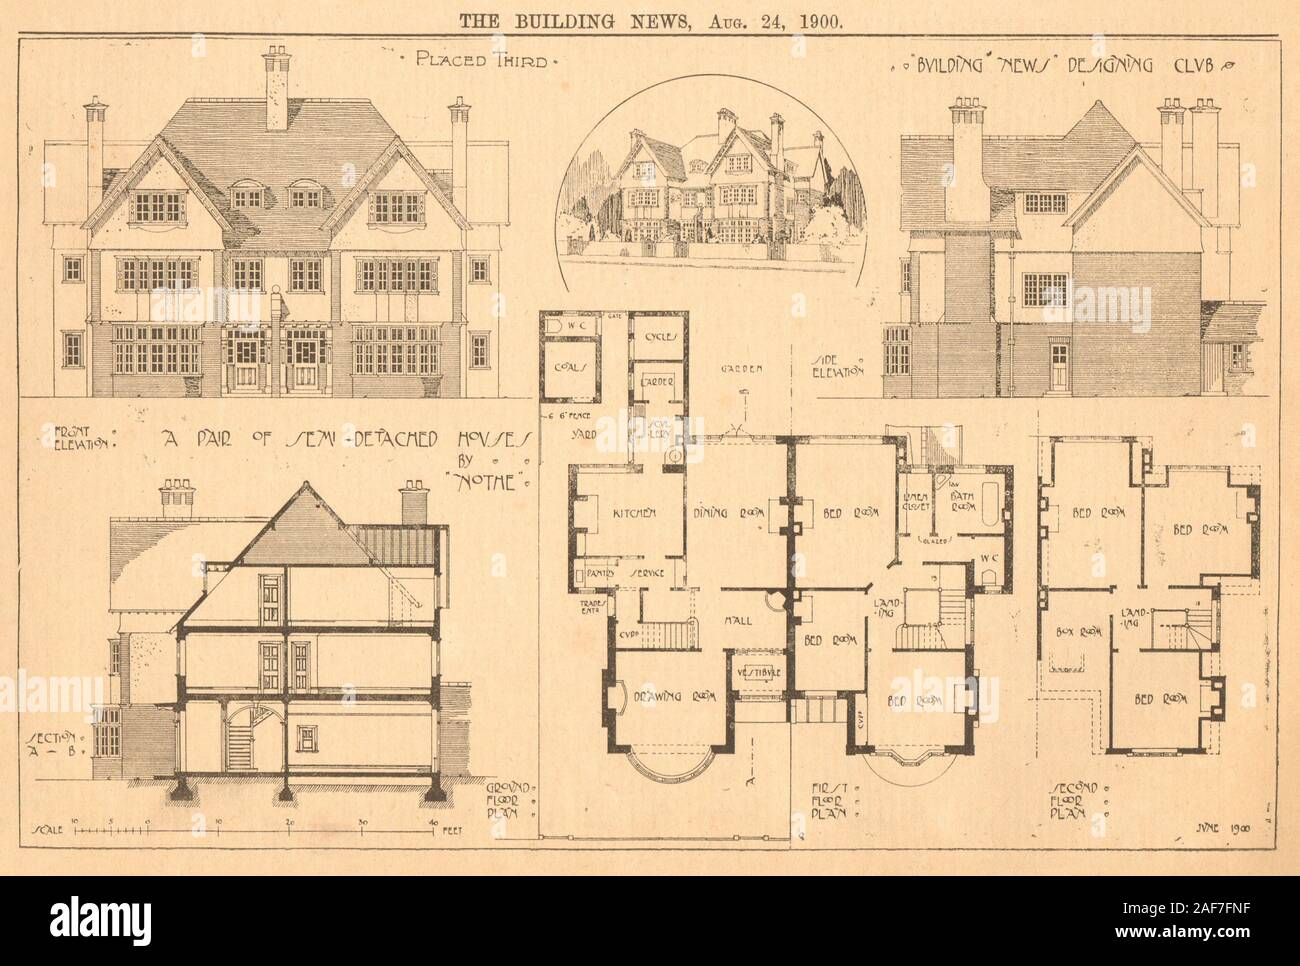 A Pair Of Semi Detached House By Nothe Floor Plans 1900 Old Antique Print Stock Photo Alamy